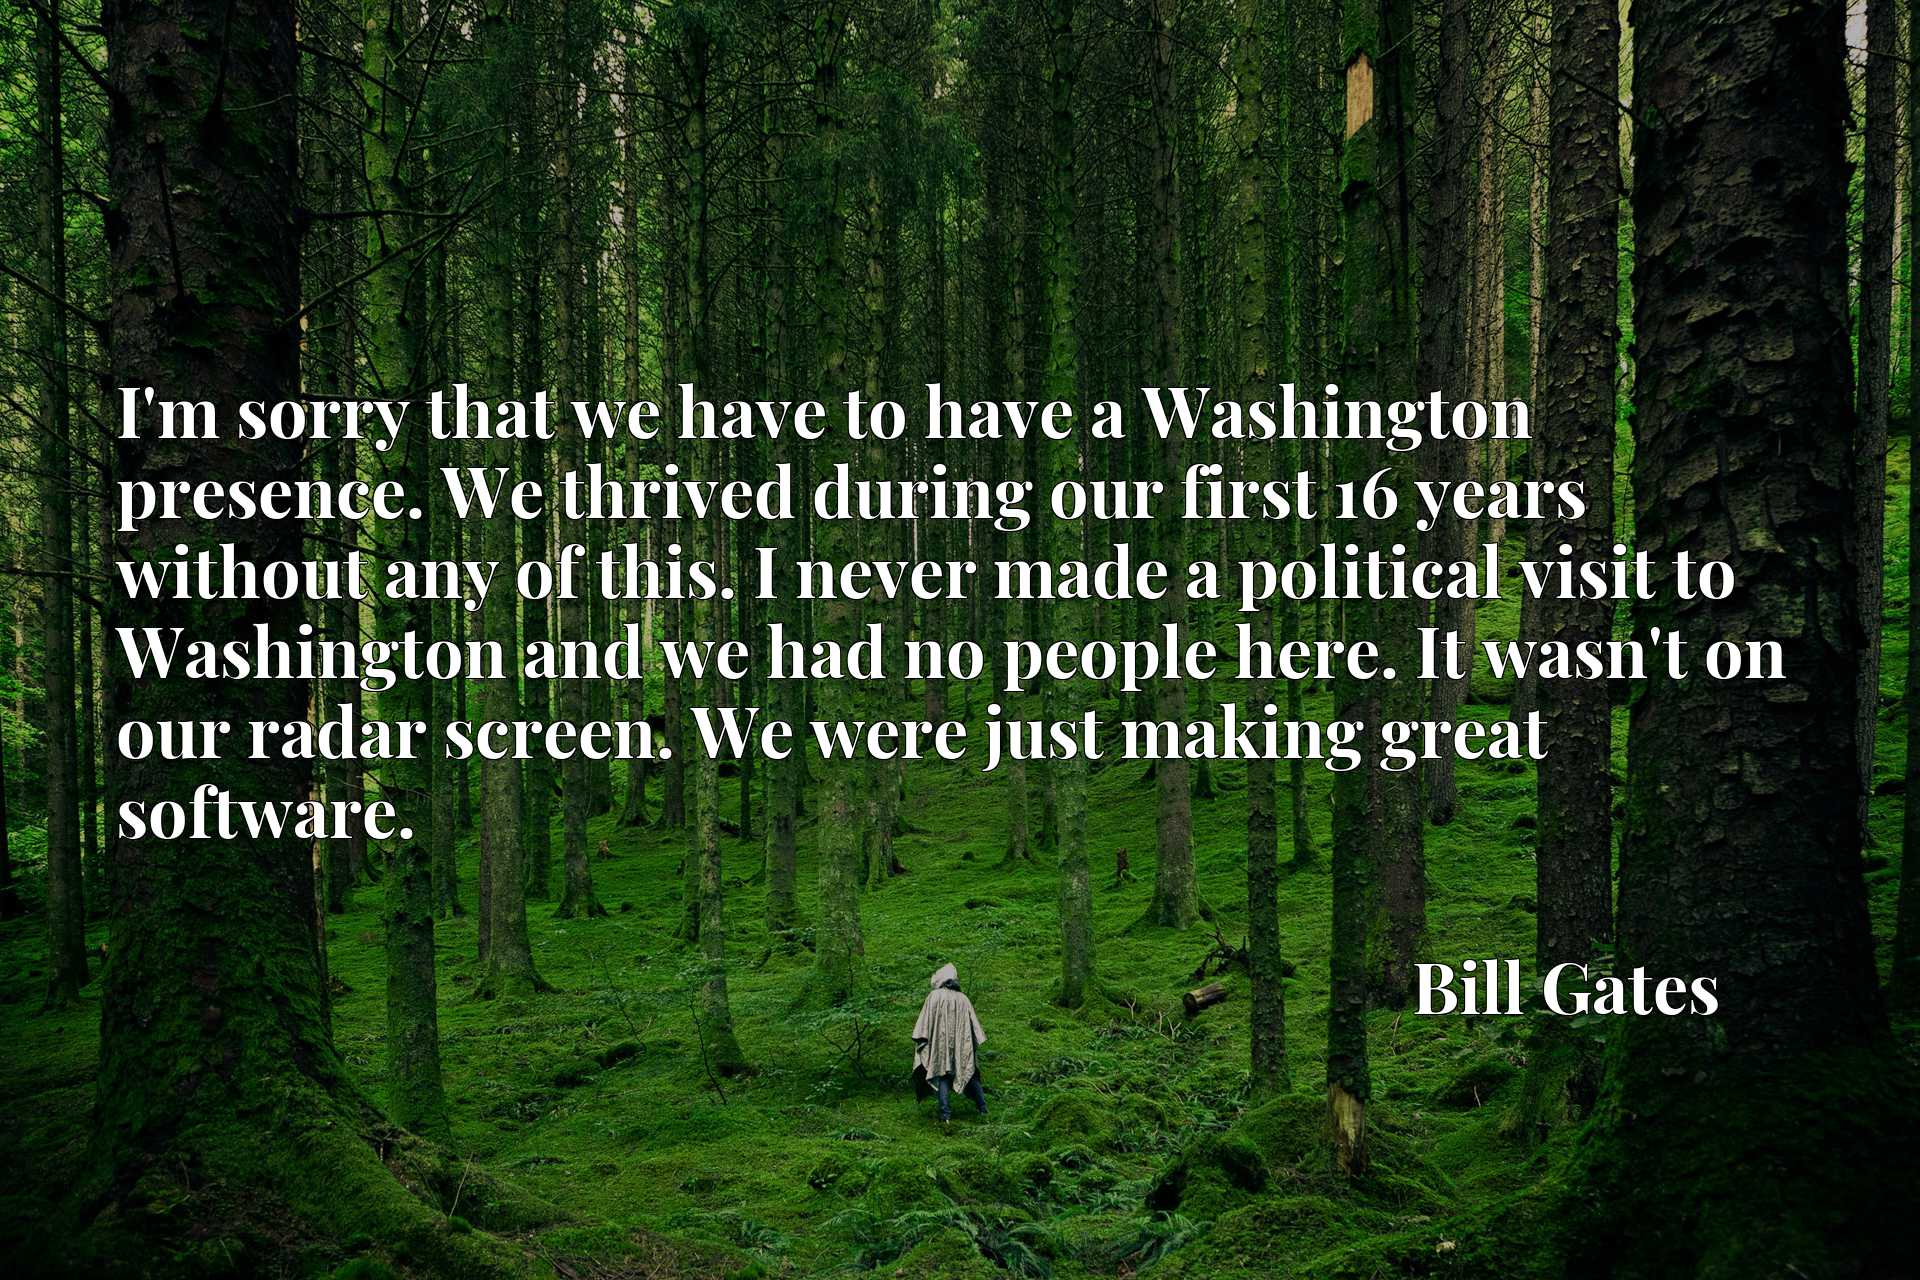 I'm sorry that we have to have a Washington presence. We thrived during our first 16 years without any of this. I never made a political visit to Washington and we had no people here. It wasn't on our radar screen. We were just making great software.